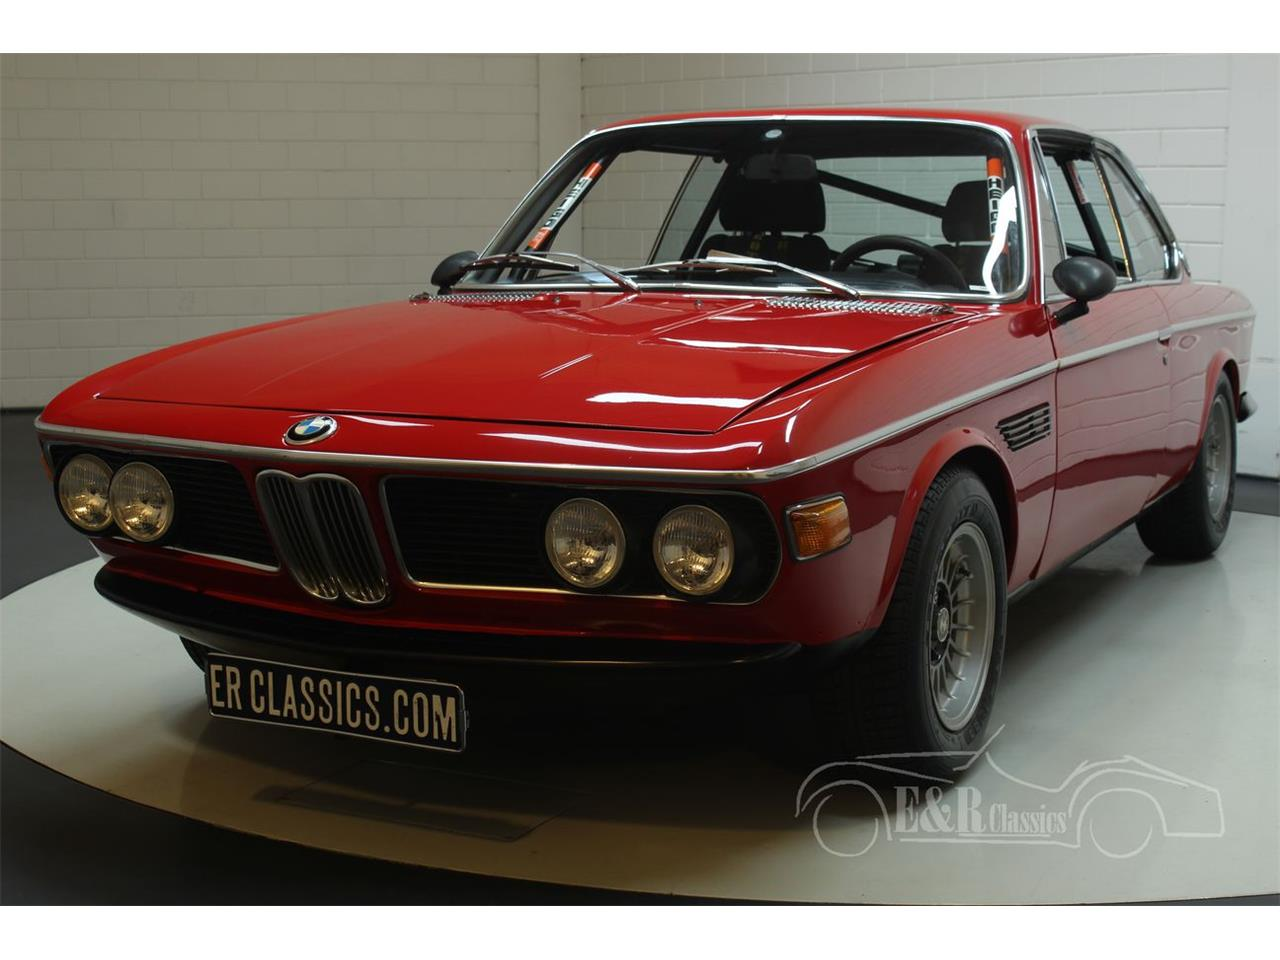 Large Picture of 1973 BMW 3.0CSL located in Noord-Brabant - $135,500.00 Offered by E & R Classics - PH42